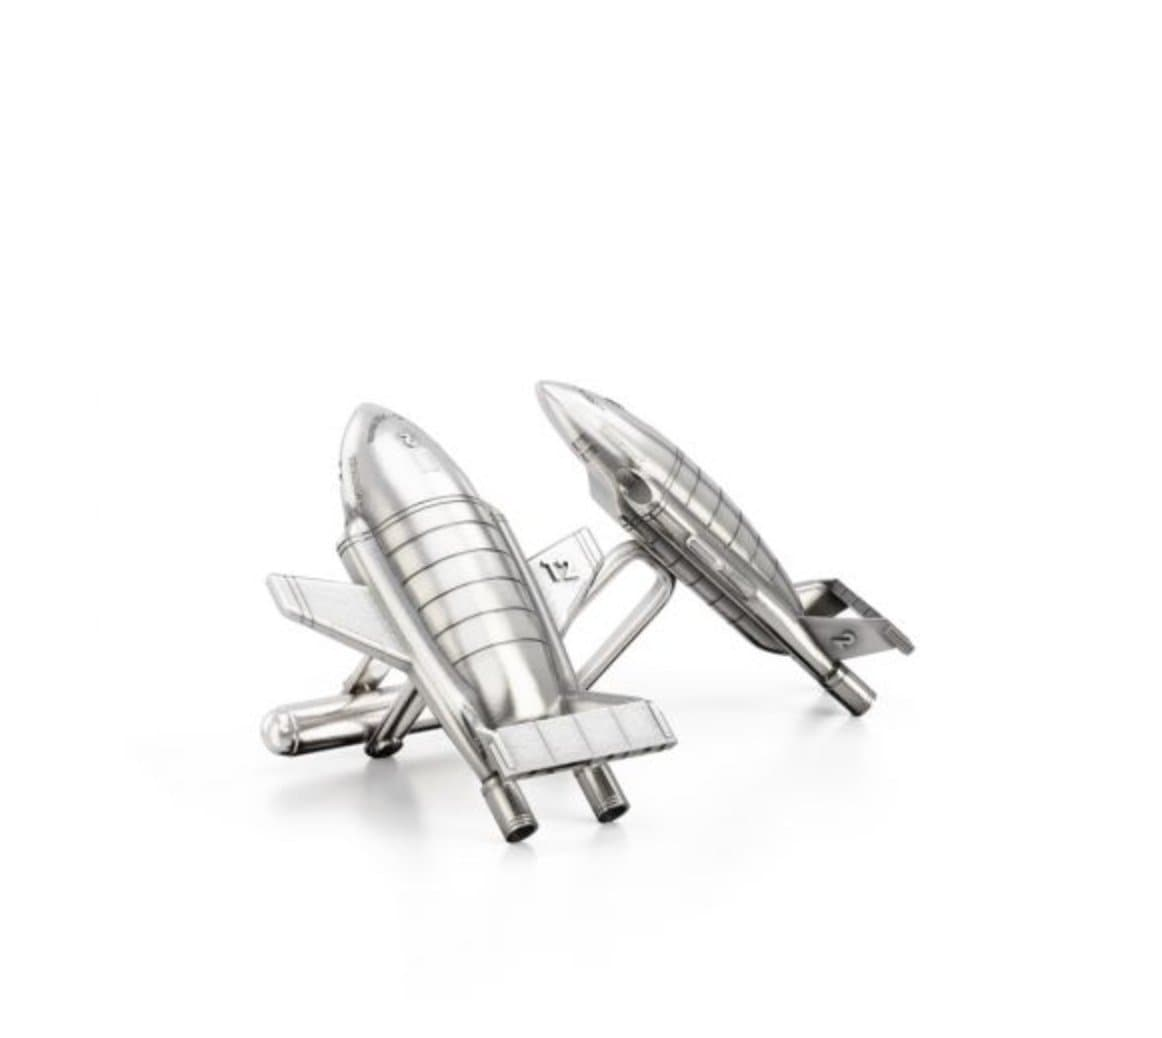 Thunderbird 2 Cufflink Set - The Gerry Anderson Store